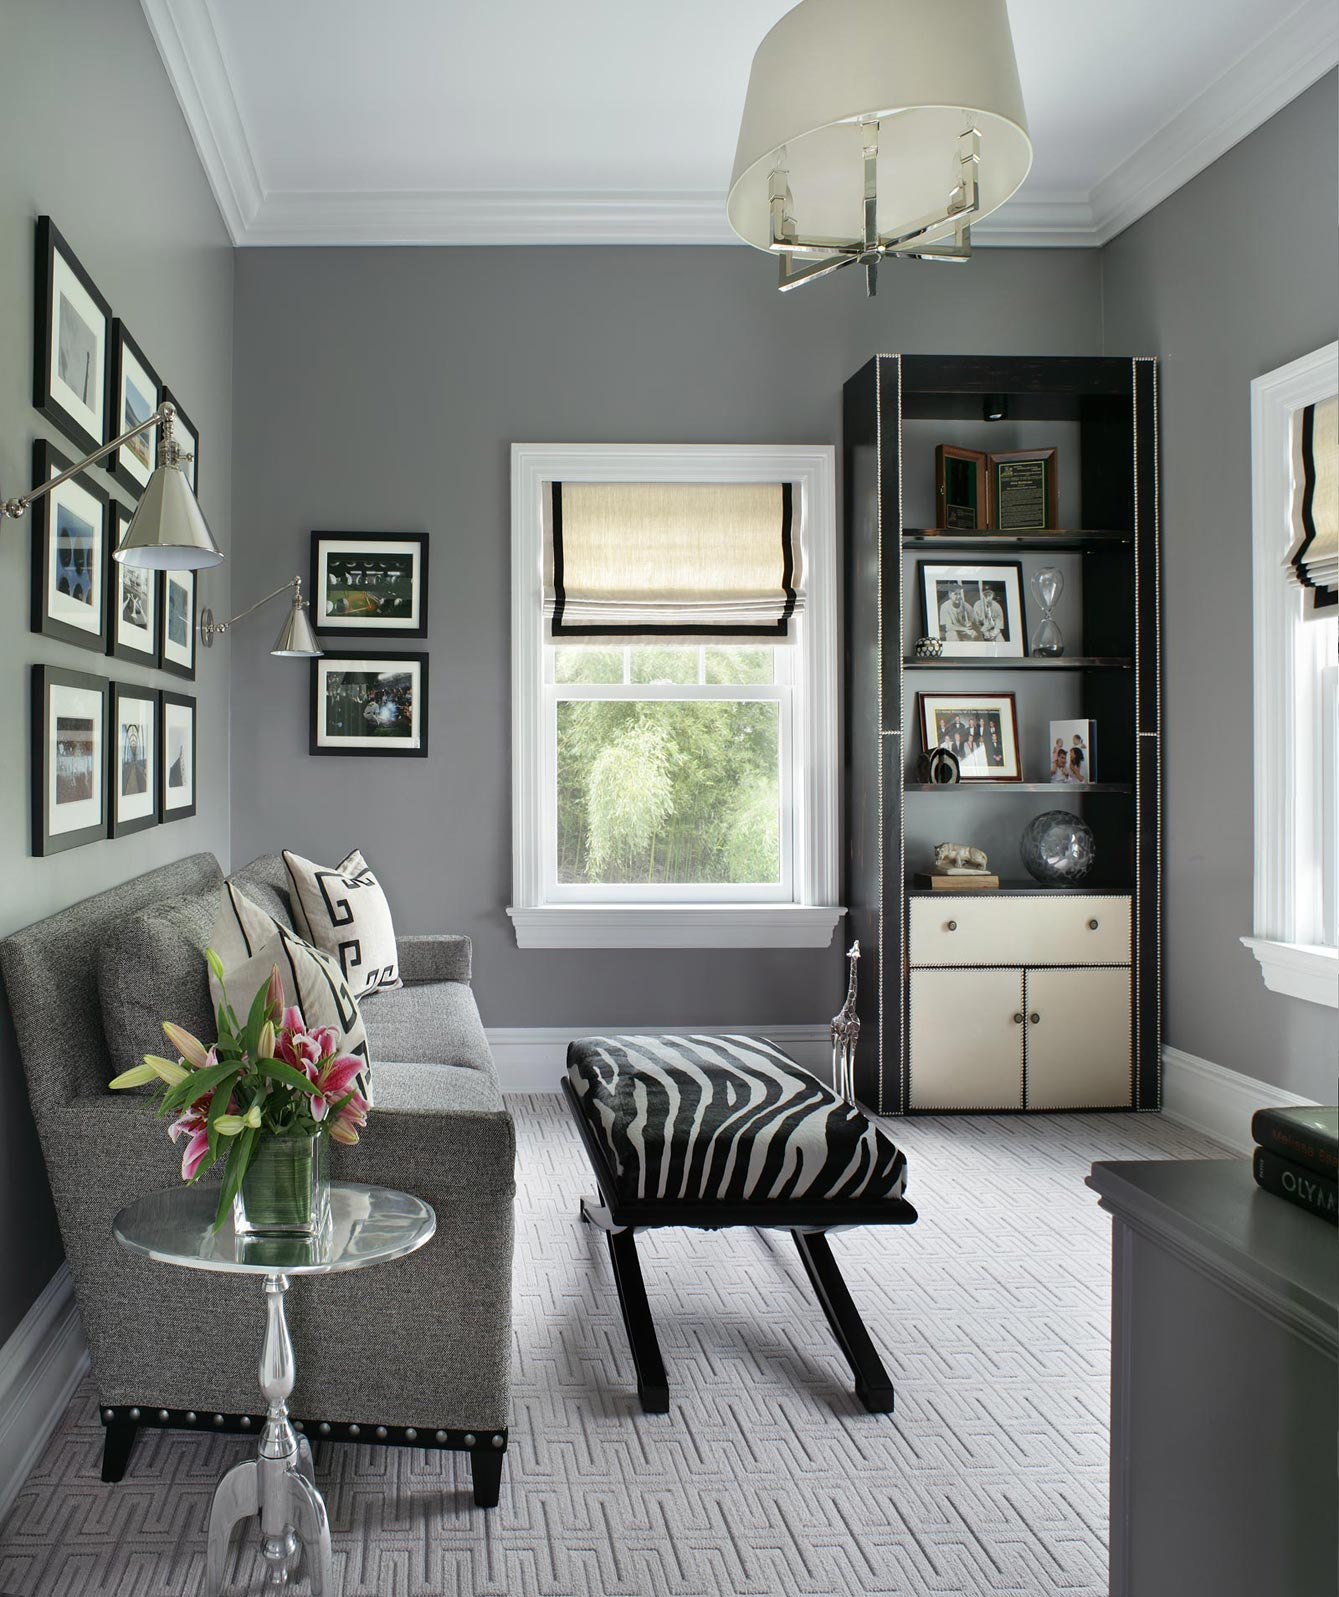 Valerie Grant Interior Design New Jersey